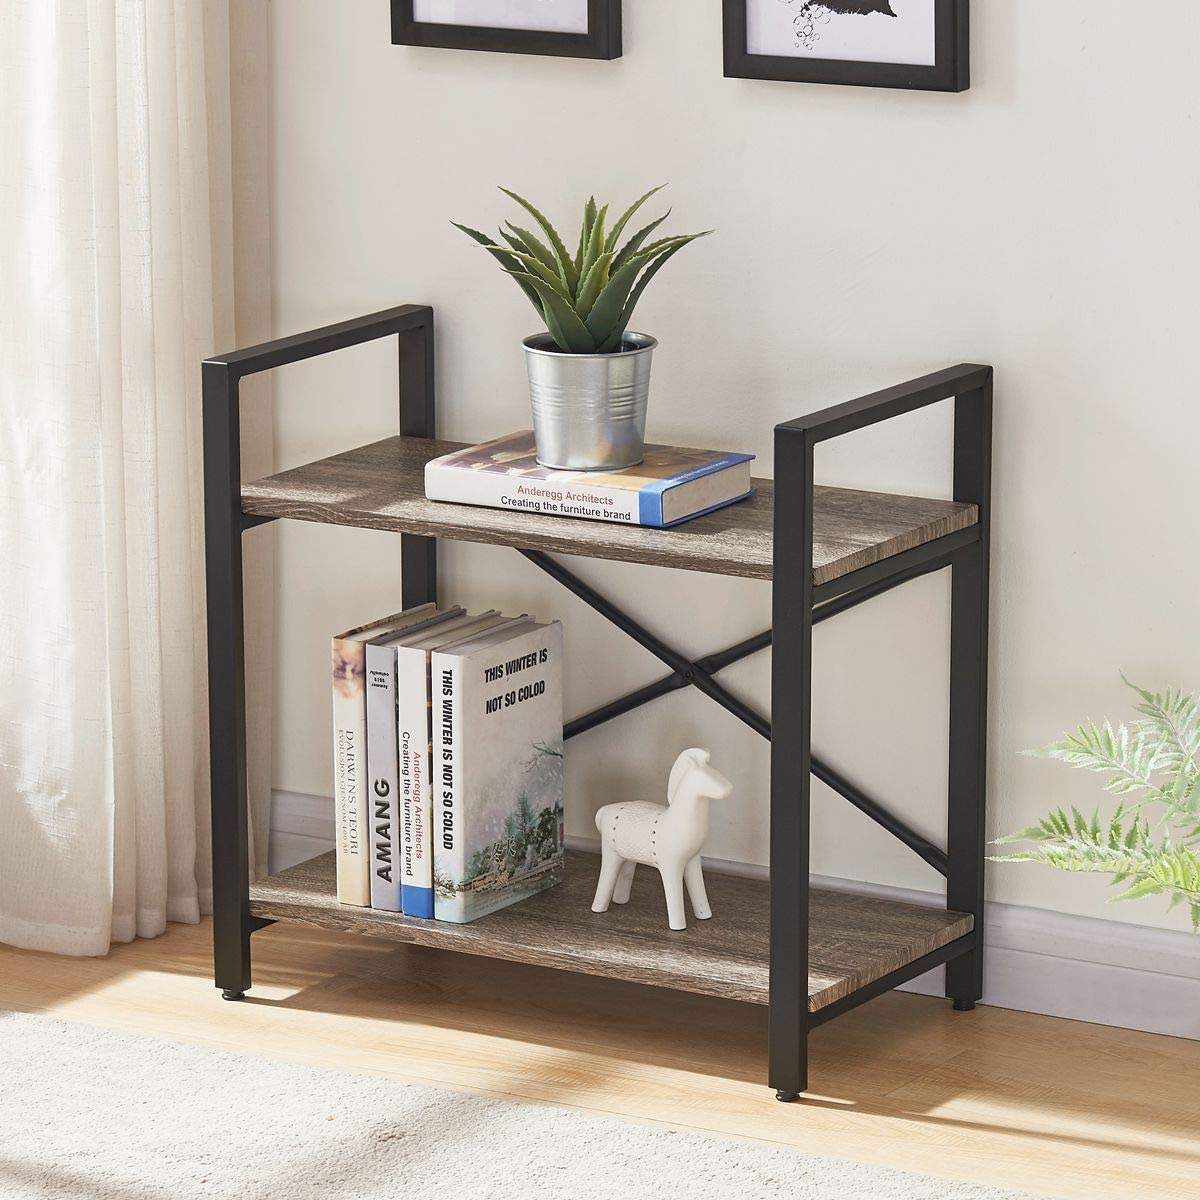 BON AUGURE Small Bookshelf for Small Space | Low Bookcase